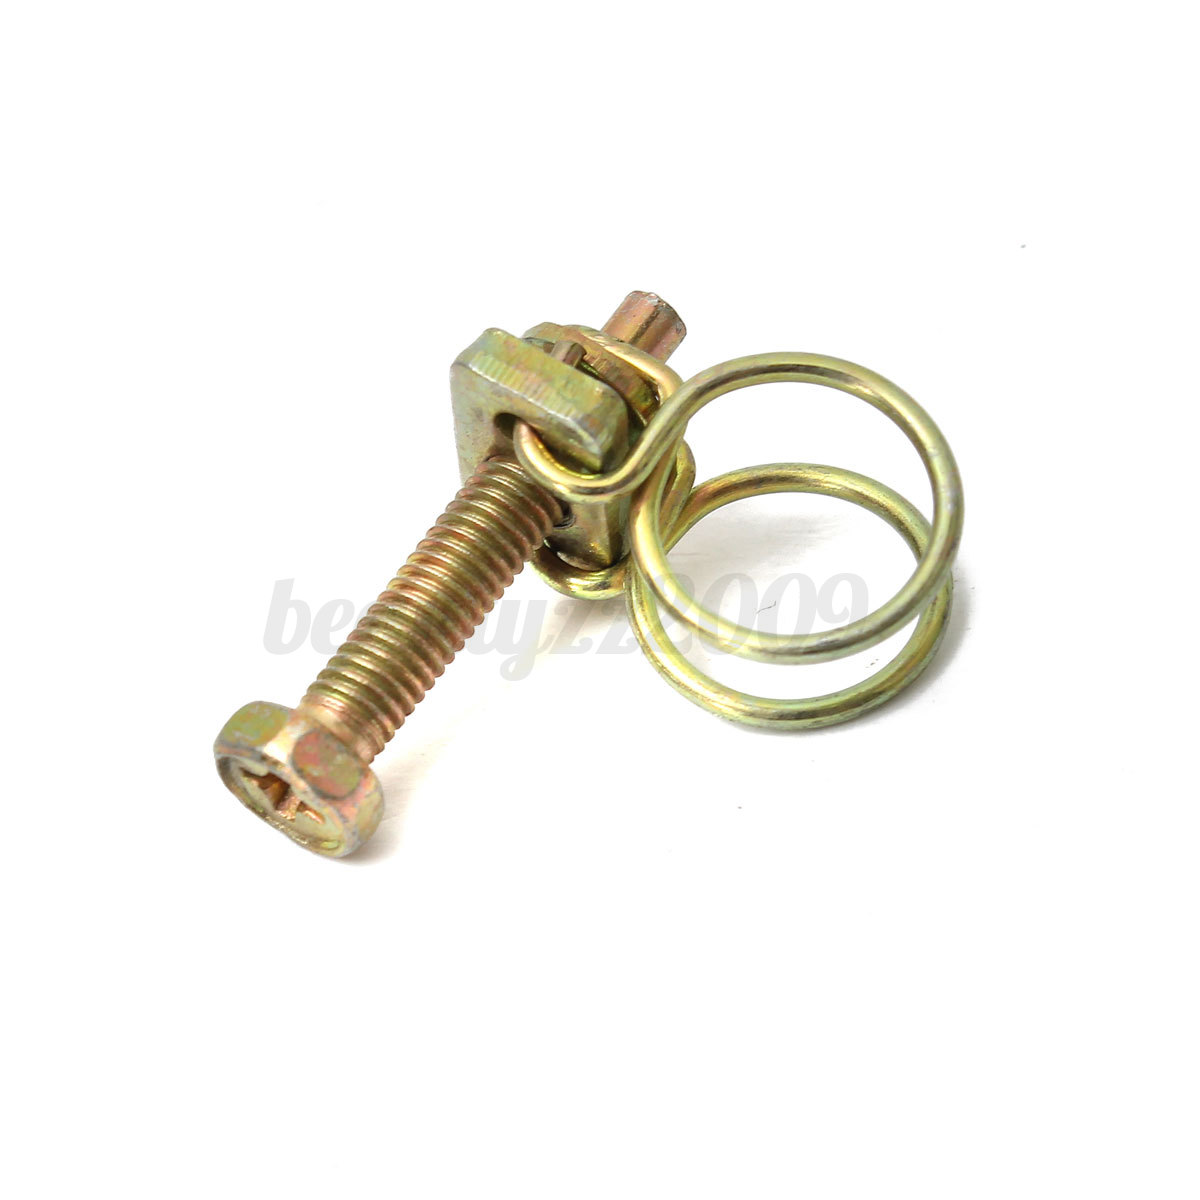 Double wire hose clamp pipe clip screw bolt tight fitting